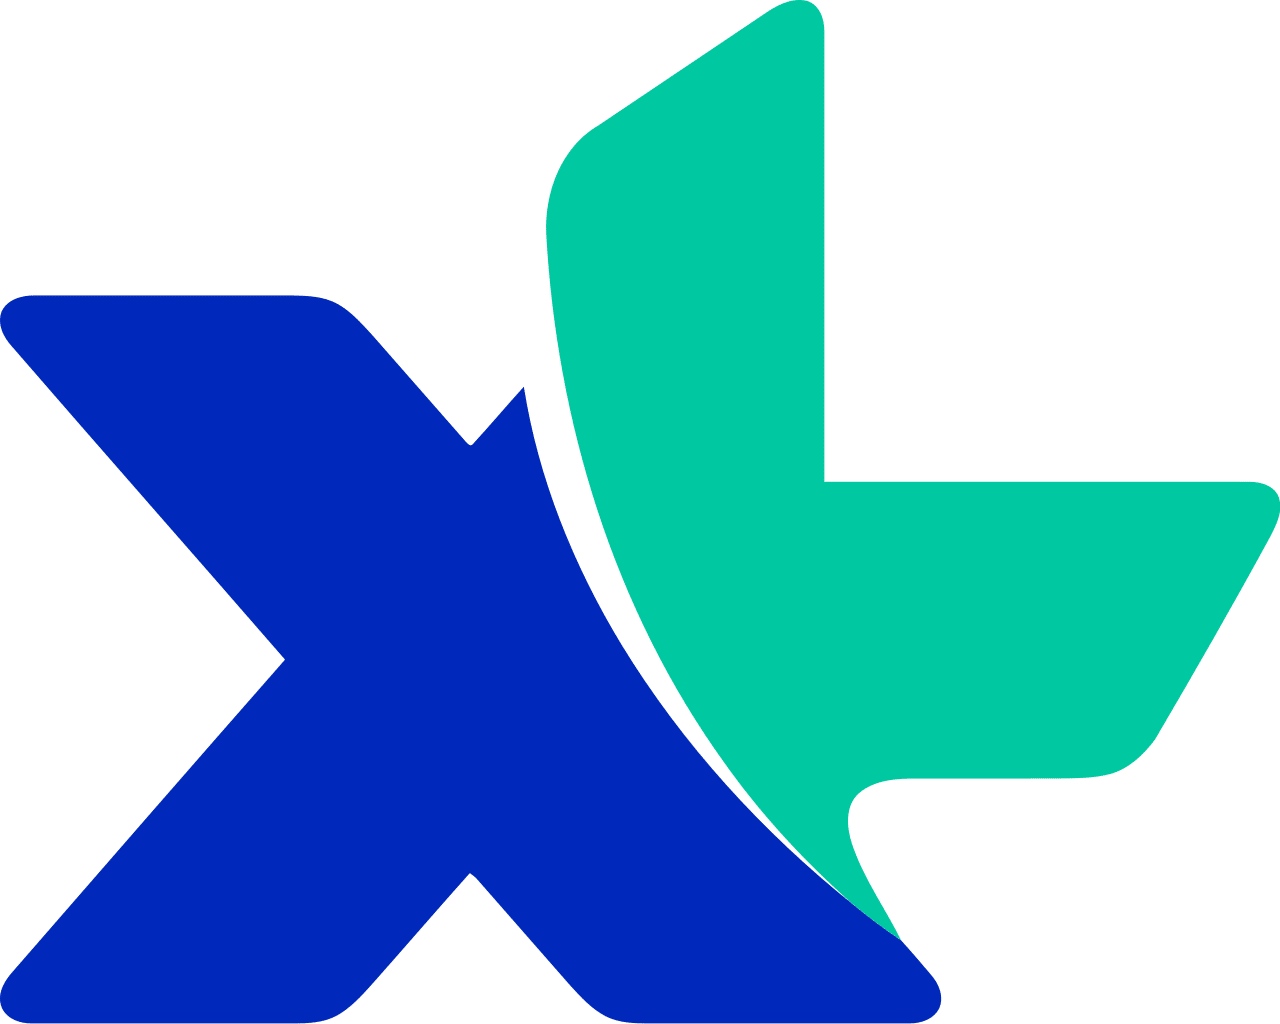 Logo XL Transparan